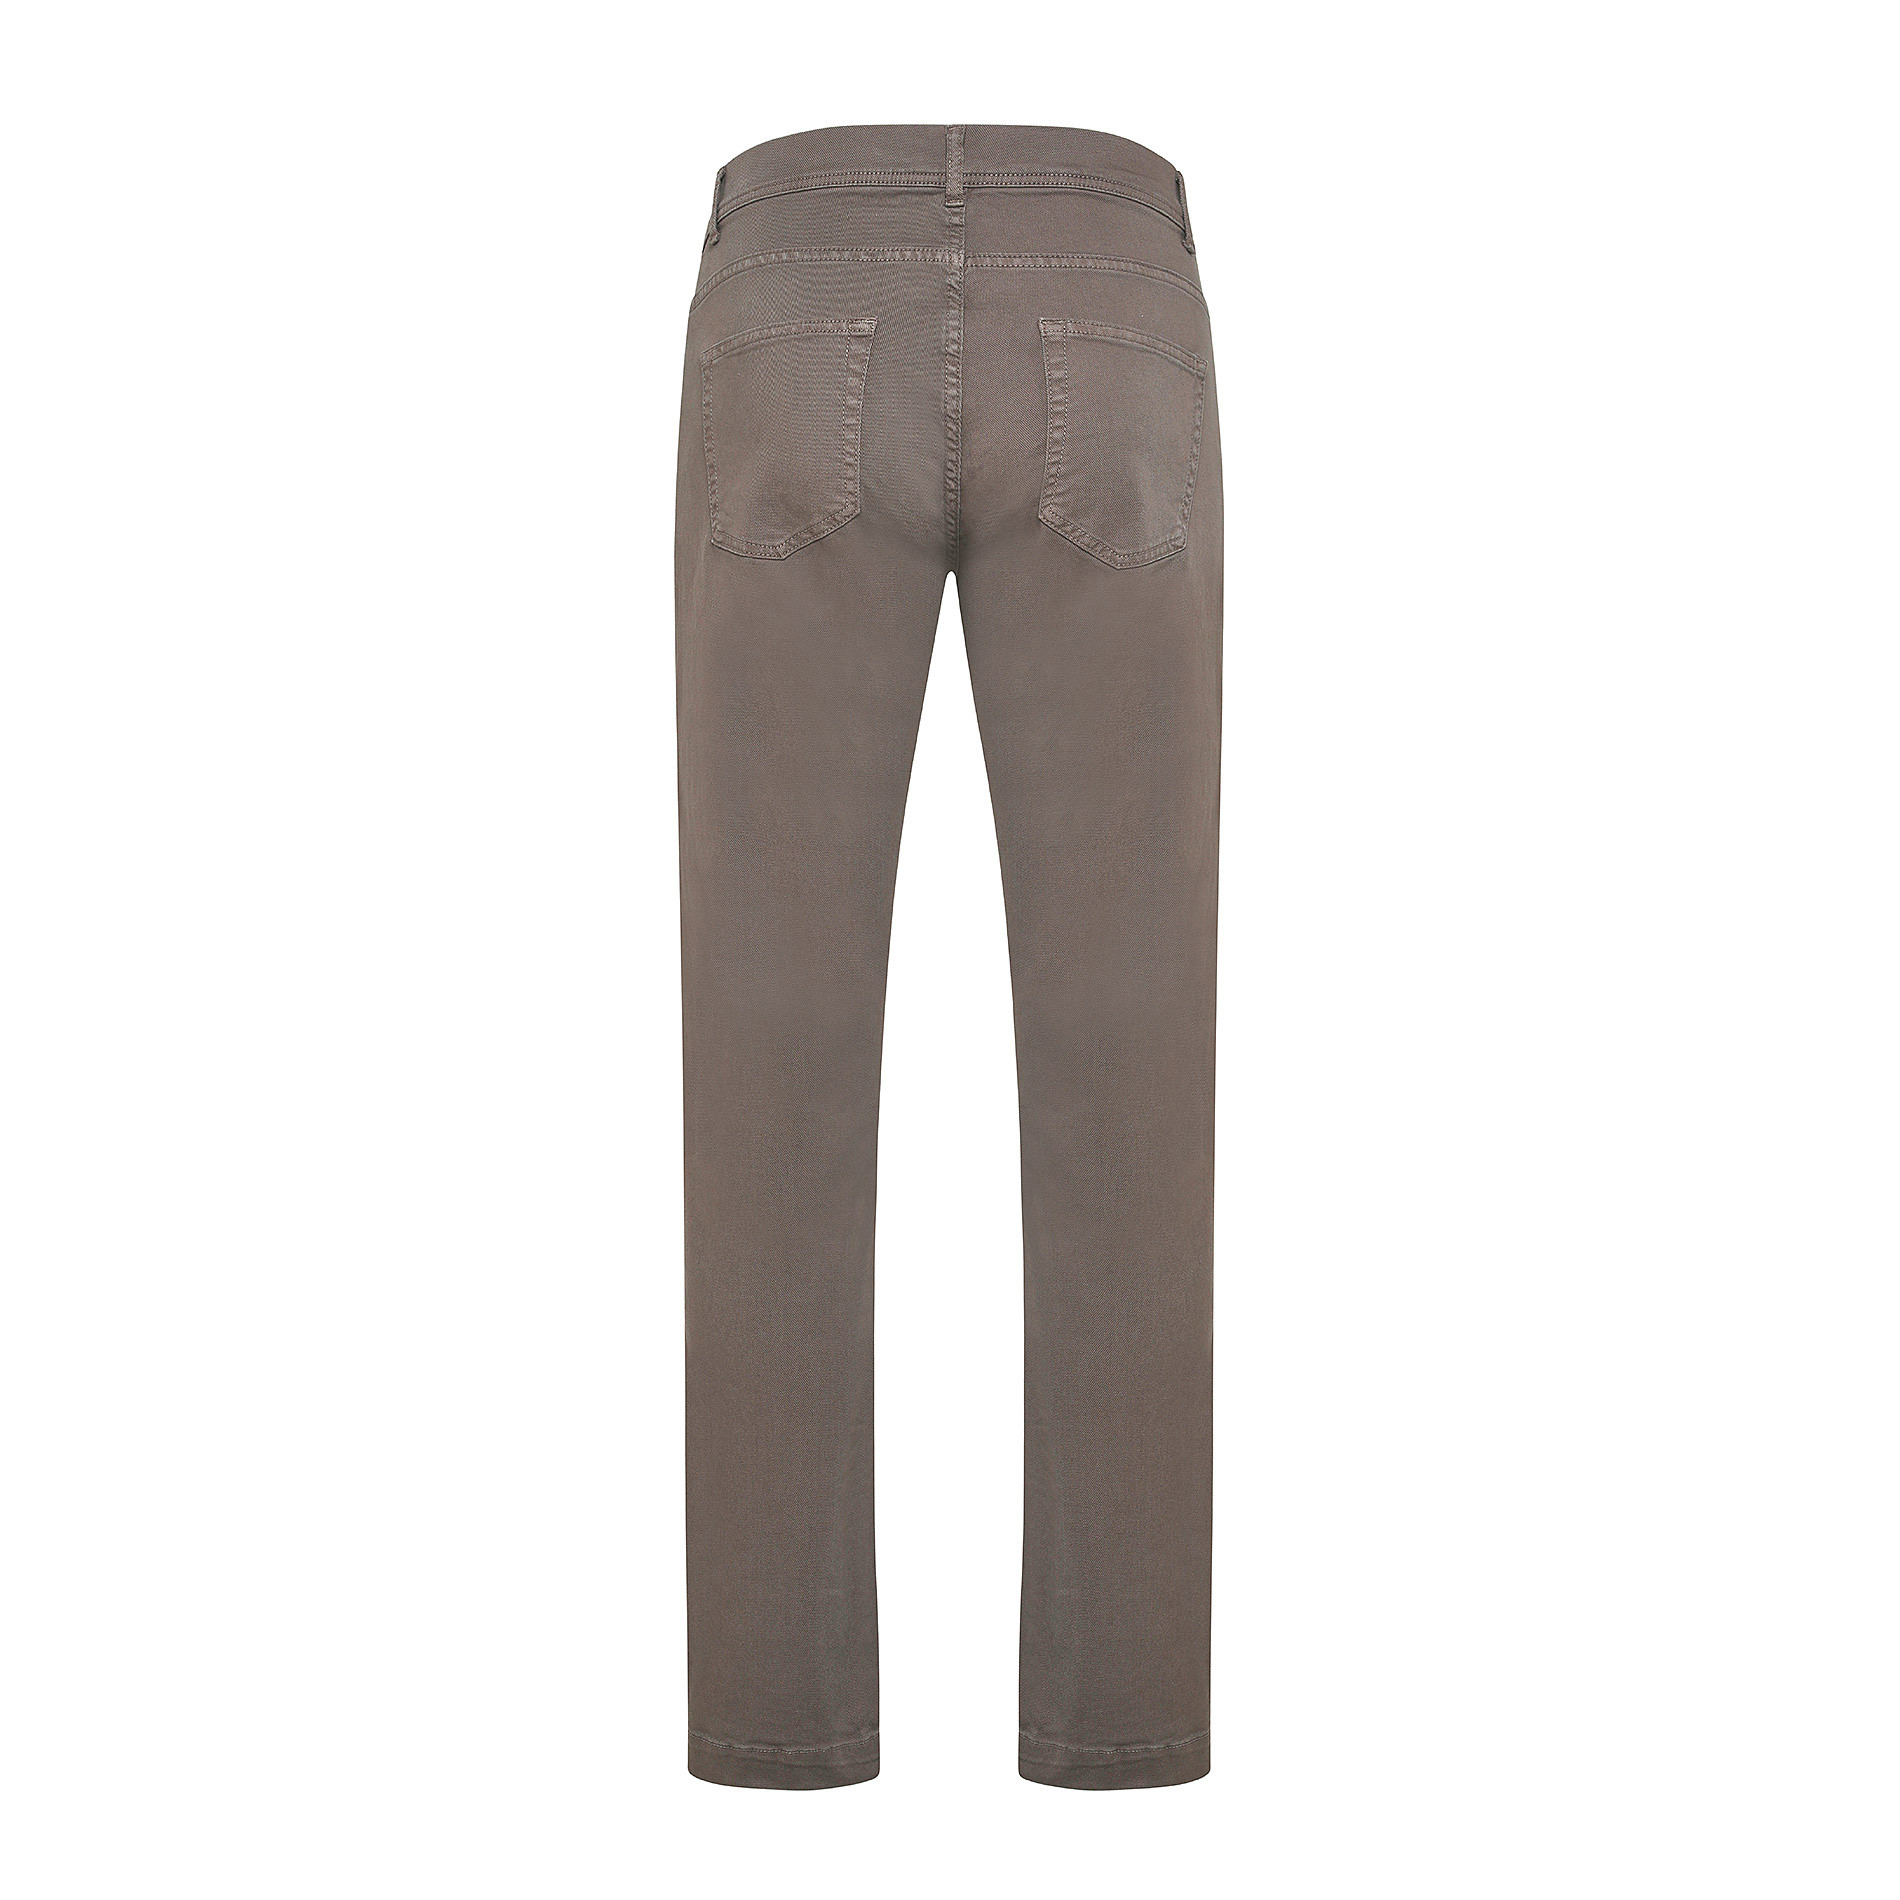 Pantalone cotone stretch 5 tasche JCT, Beige scuro, large image number 1